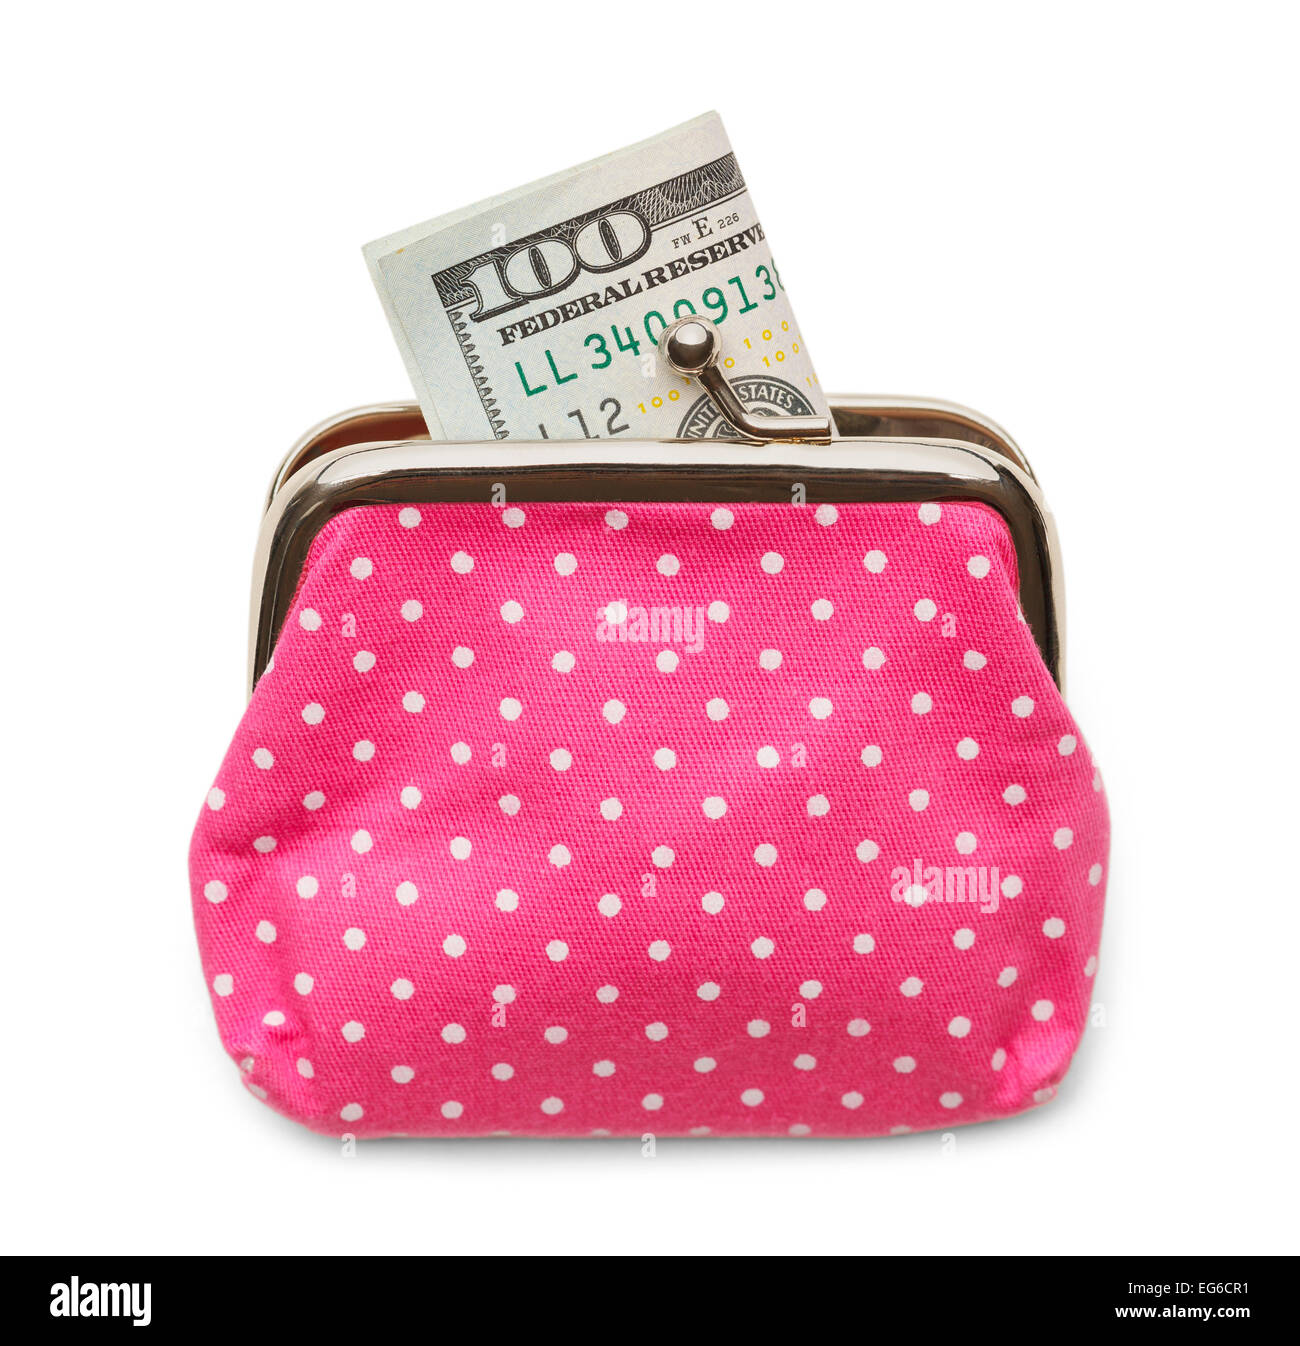 Pink Change Purse with a Hundred Dollar Bill Isolated on White Background. - Stock Image